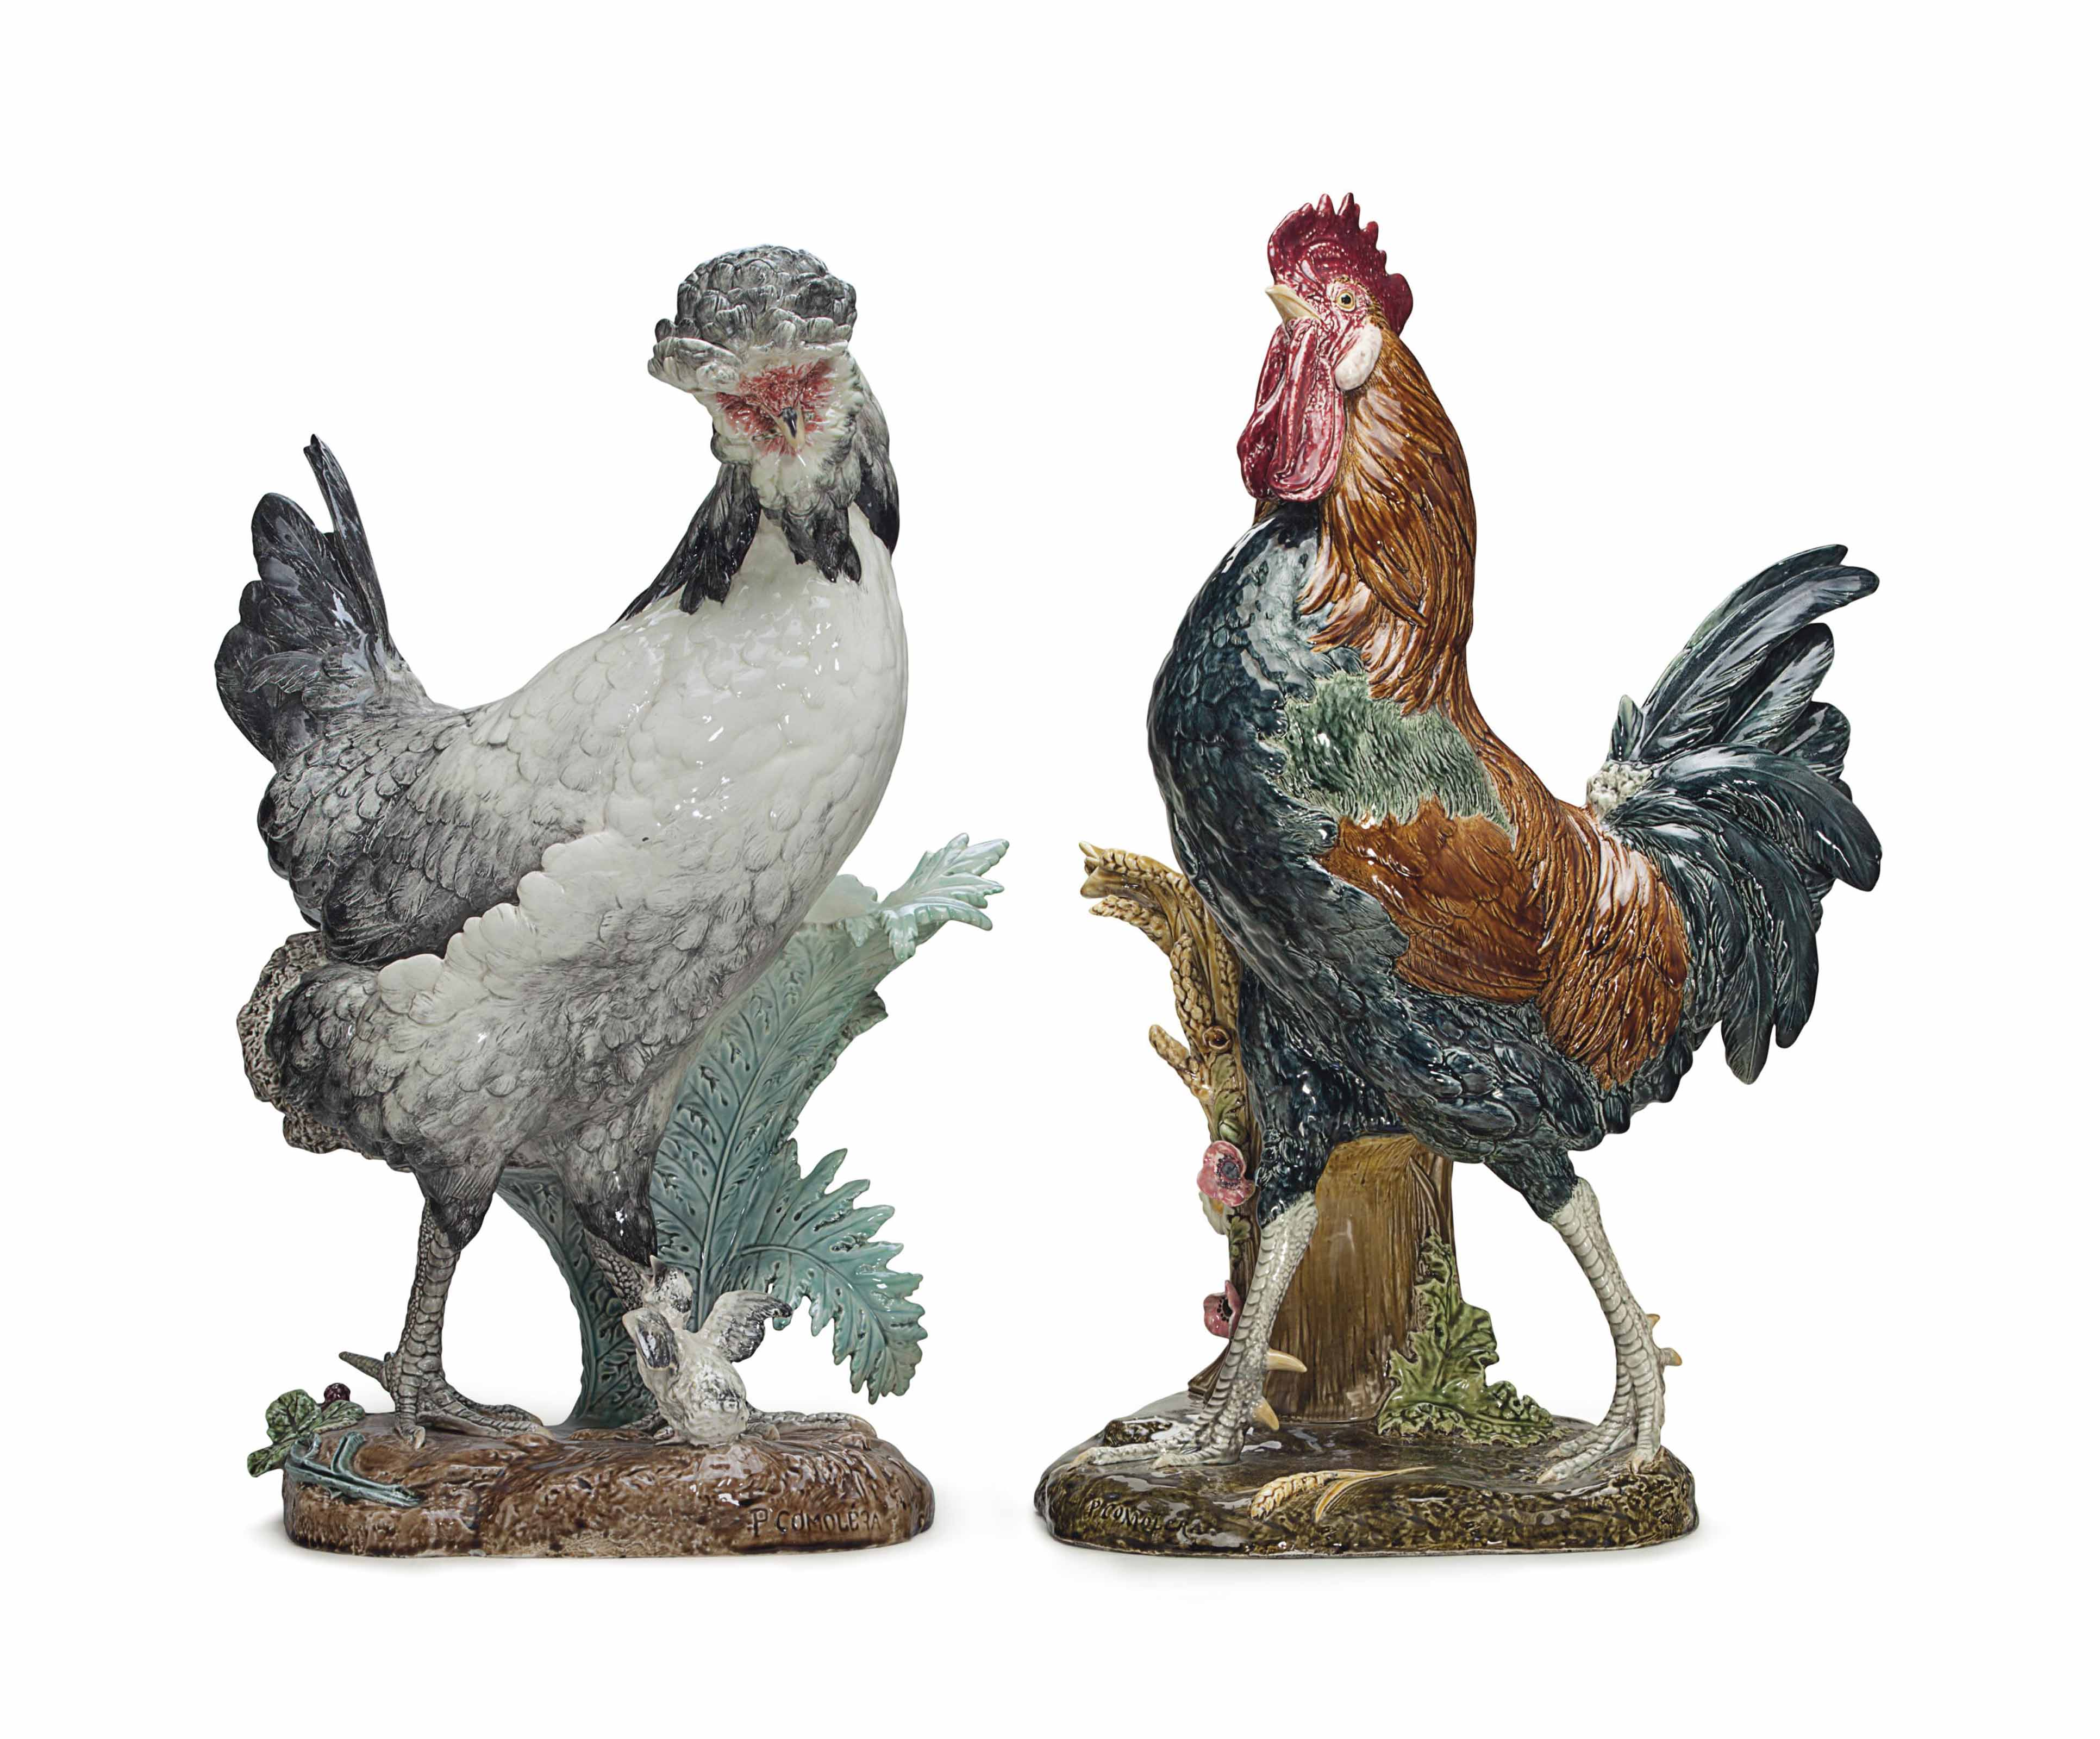 A PAIR OF CHOISY-LE-ROI (HAUTIN & BOULANGER) MAJOLICA MODELS OF A COCKEREL AND A HEN AND CHICK (POULE DE HOUDAN)